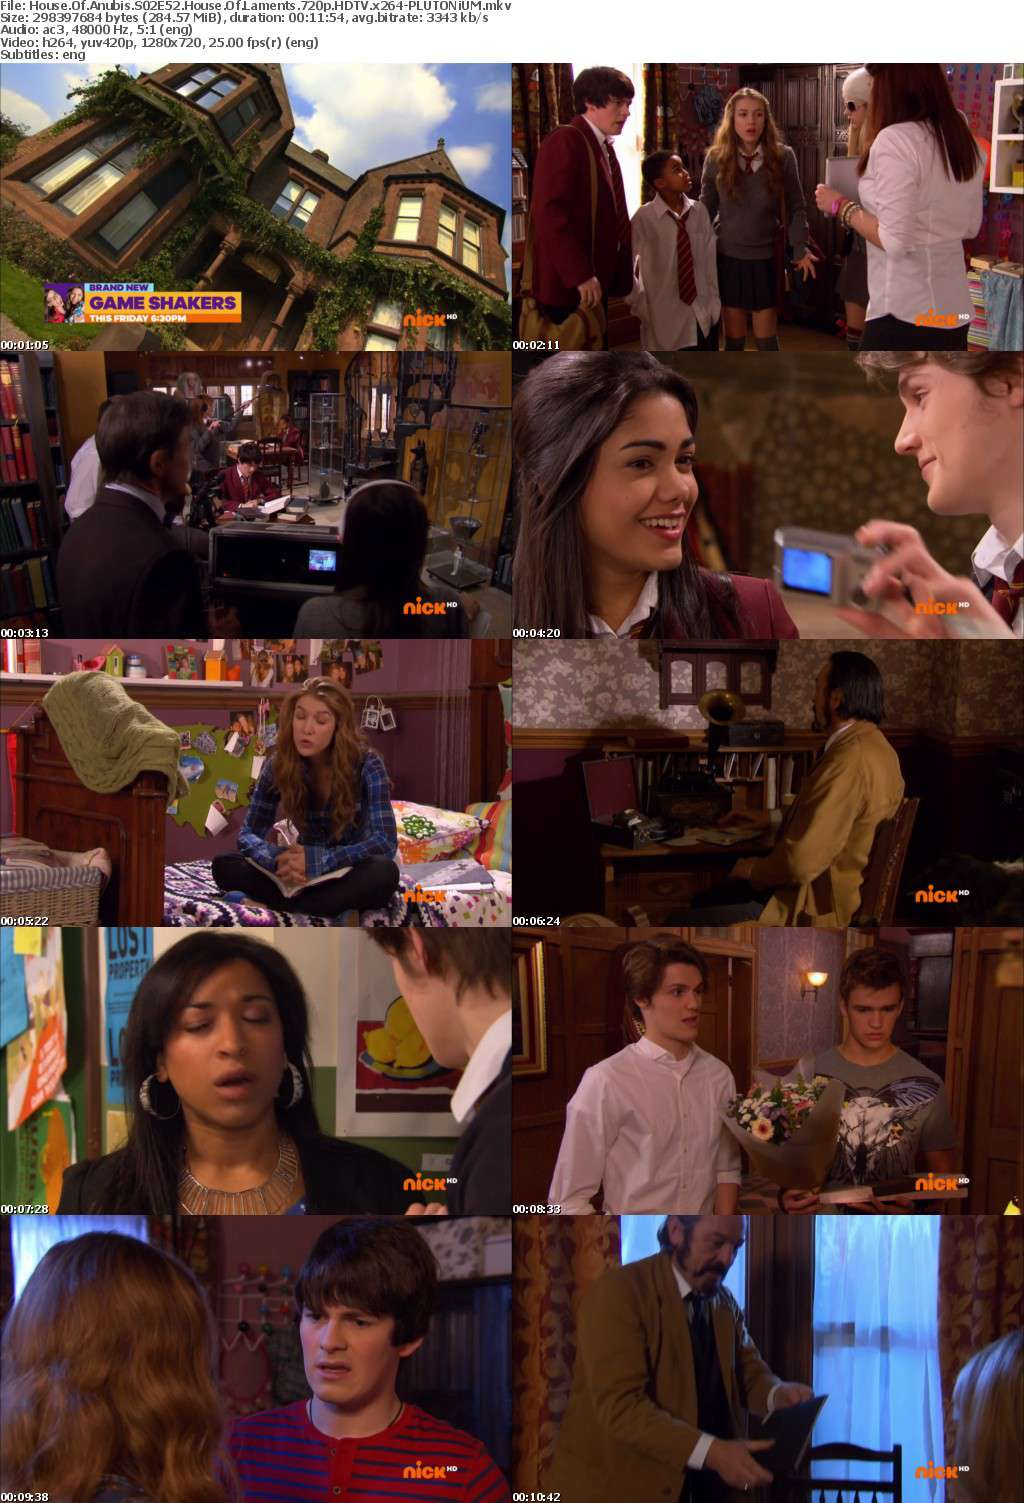 House Of Anubis S02E52 House Of Laments 720p HDTV x264-PLUTONiUM